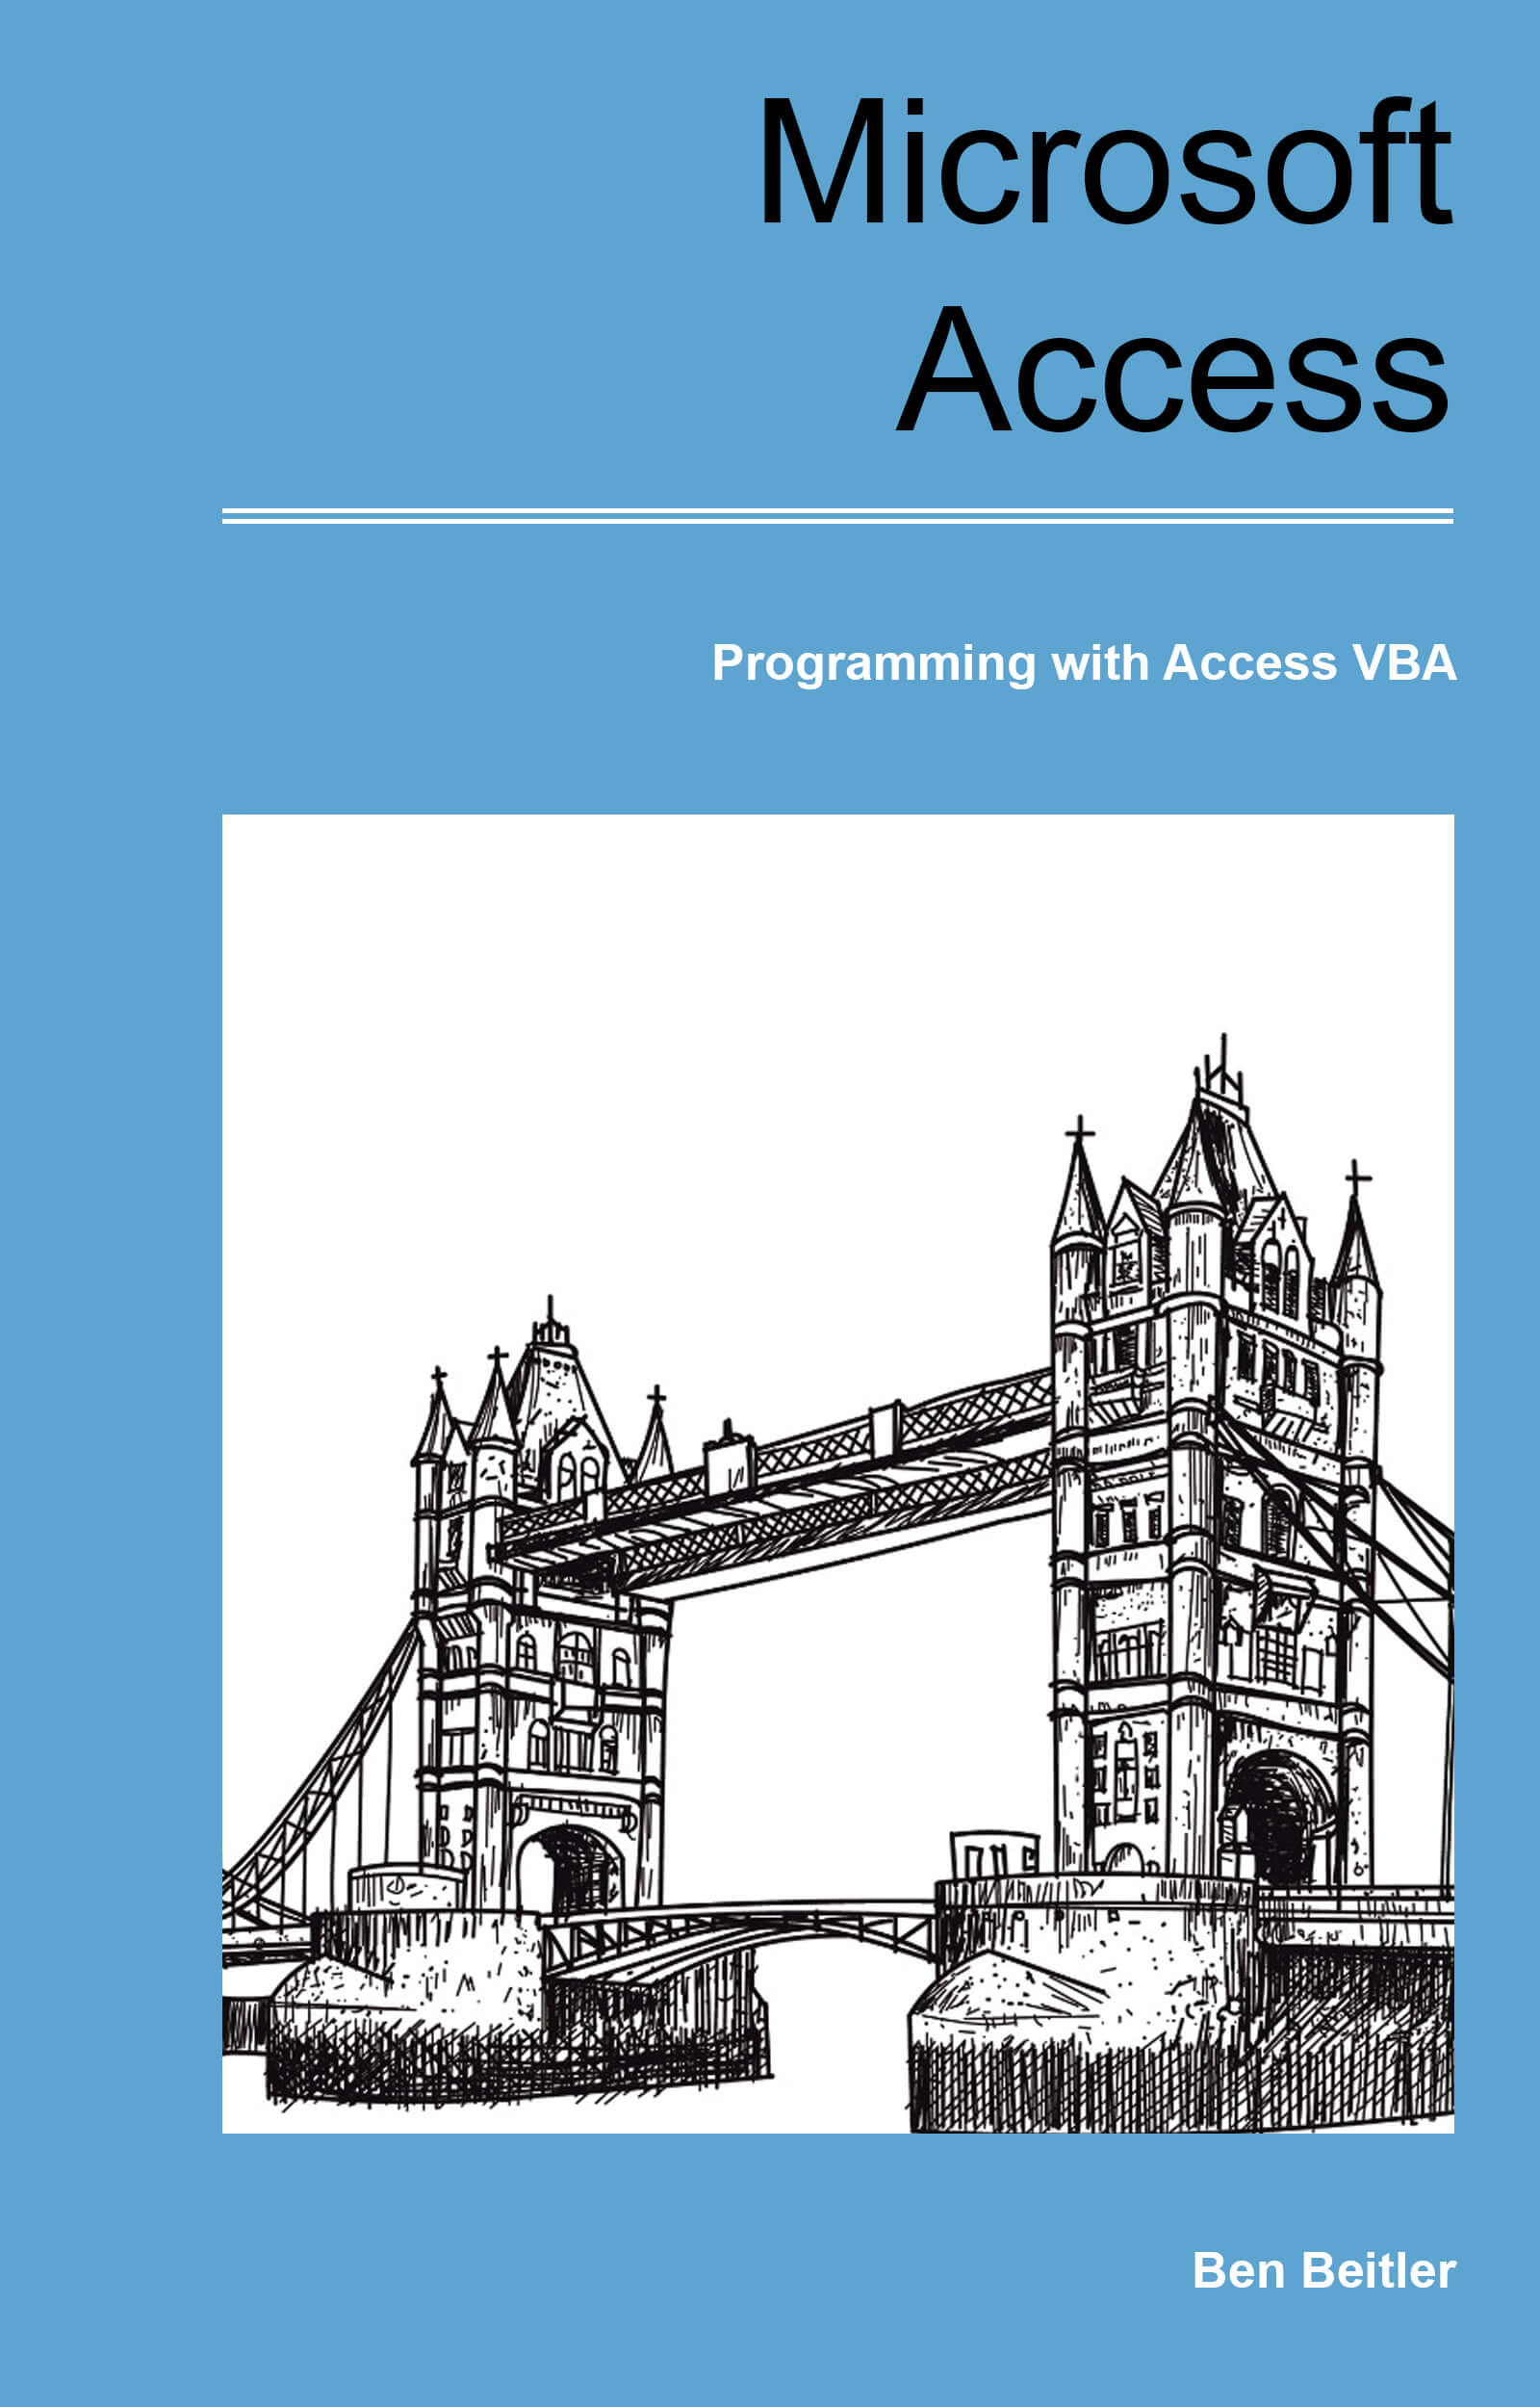 Microsoft Access VBA Programming eBook